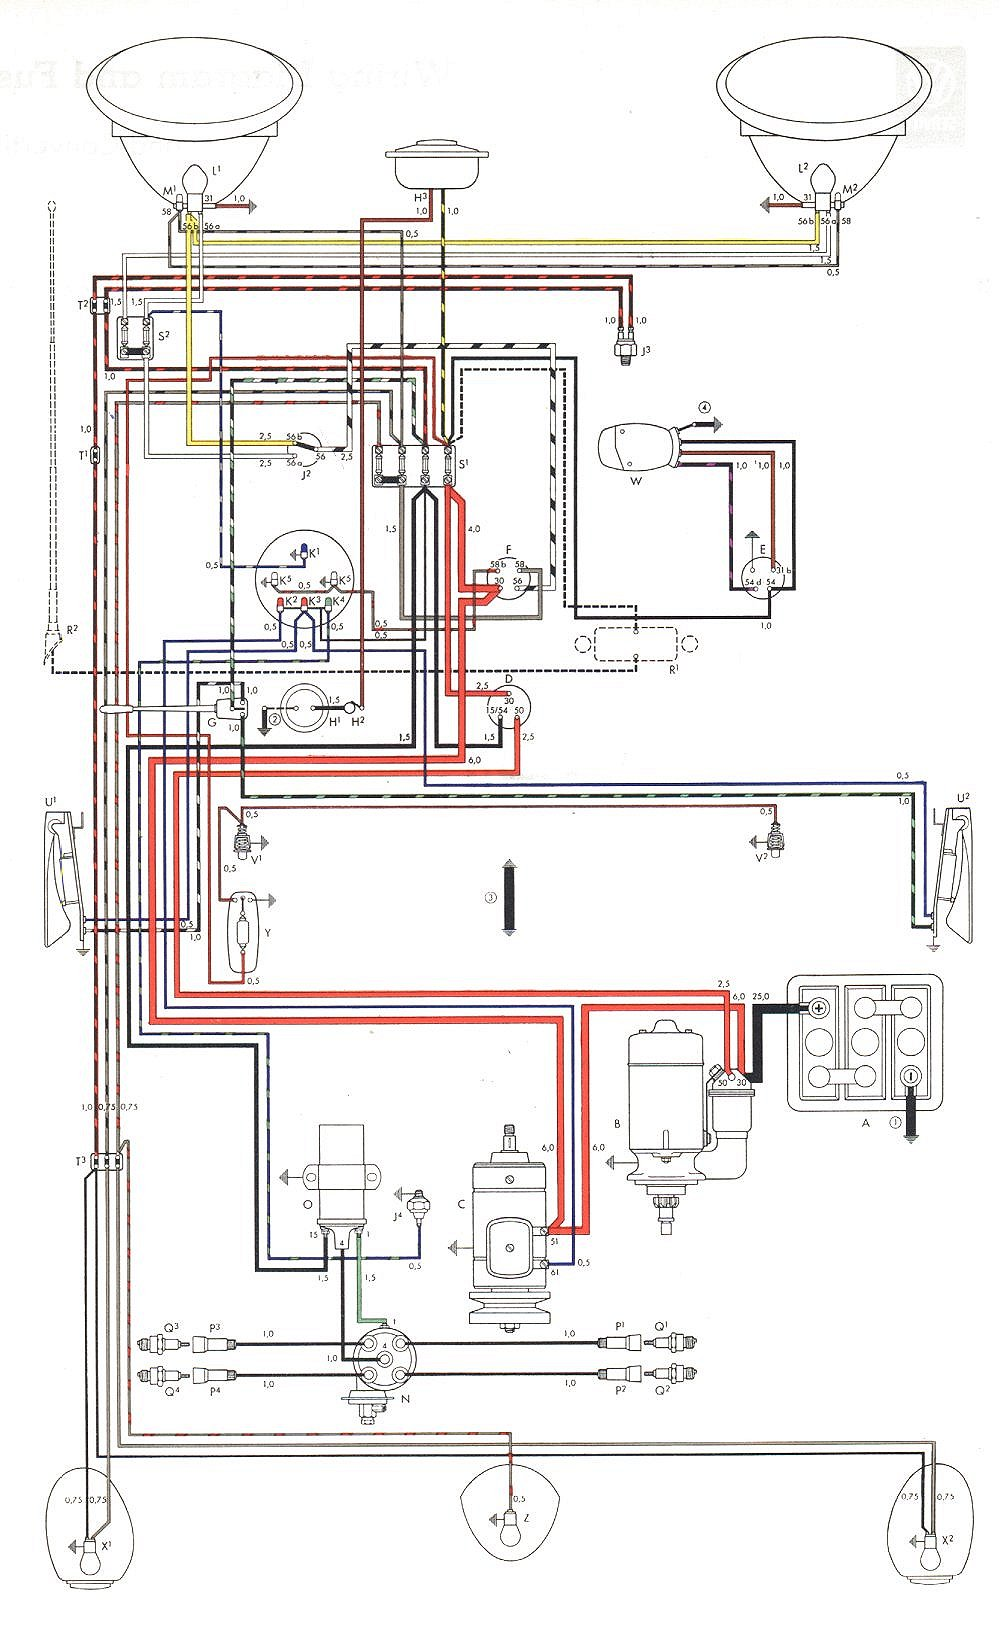 medium resolution of 58 vw alternator wiring data wiring diagram schema rh 50 diehoehle derloewen de 2005 jetta alternator wiring vw generator to alternator conversion